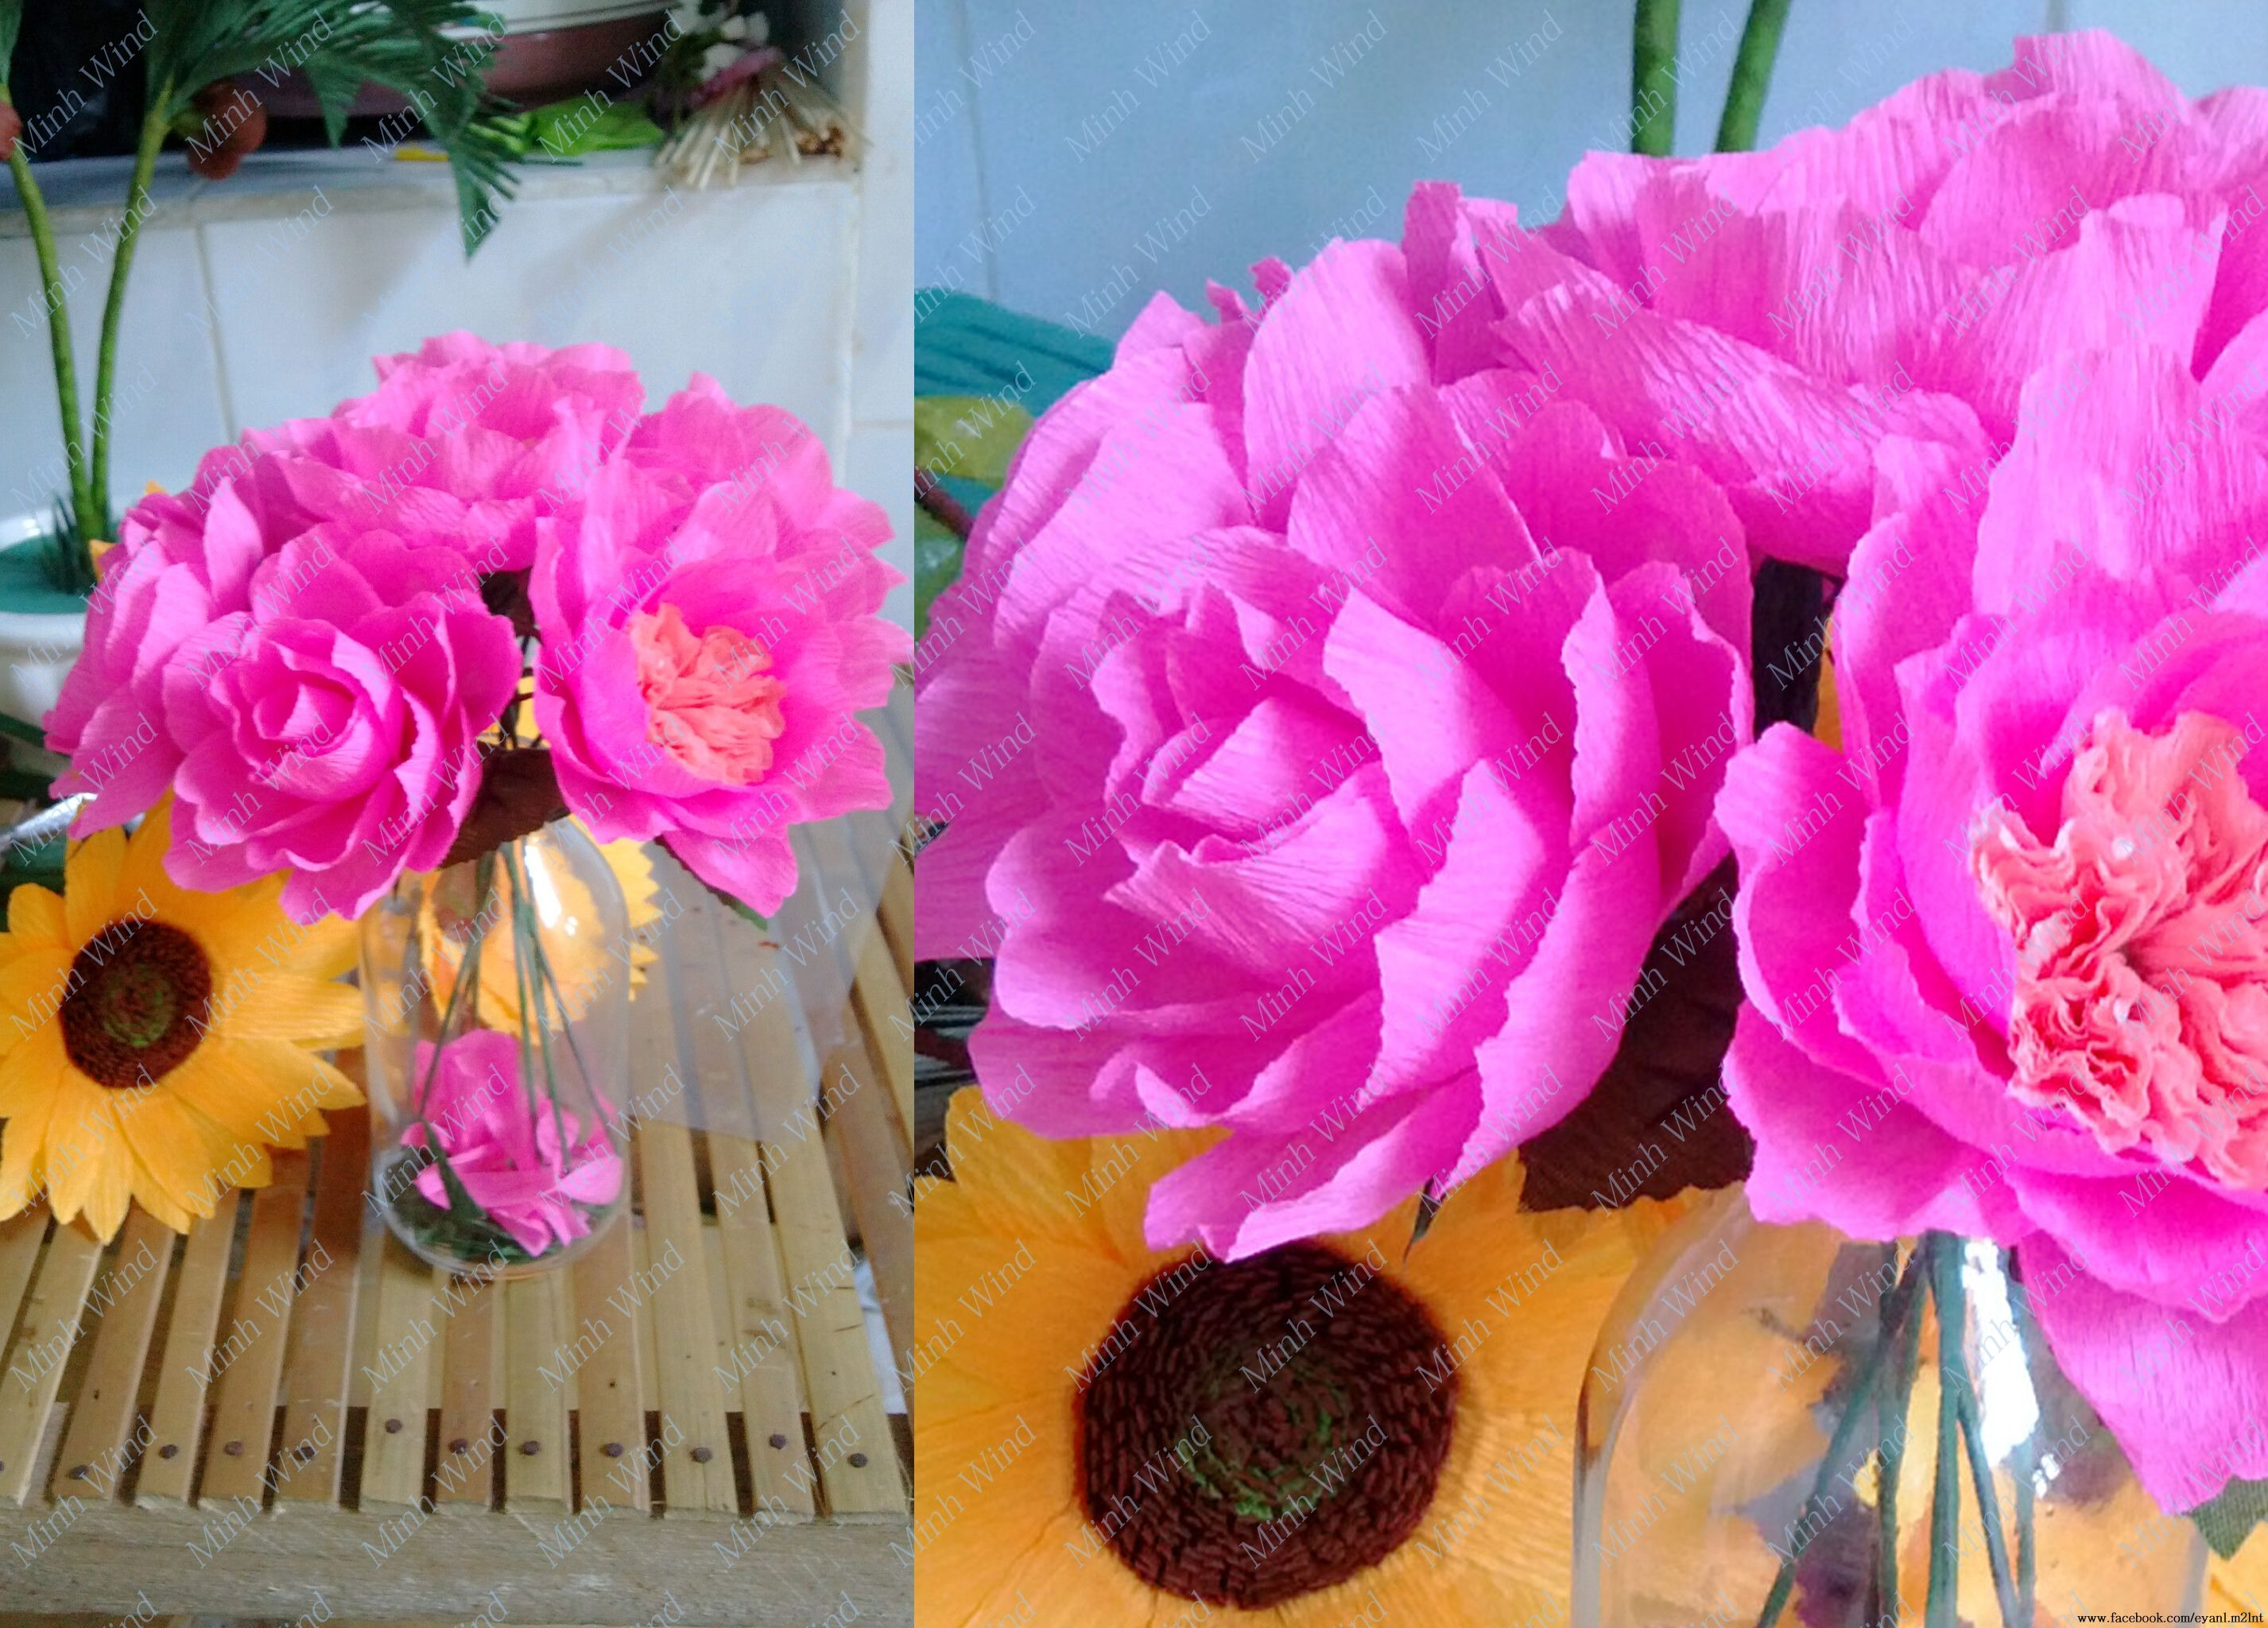 How To Make Miniature Rose Paper Flower Tutorial Hng Dn Lm